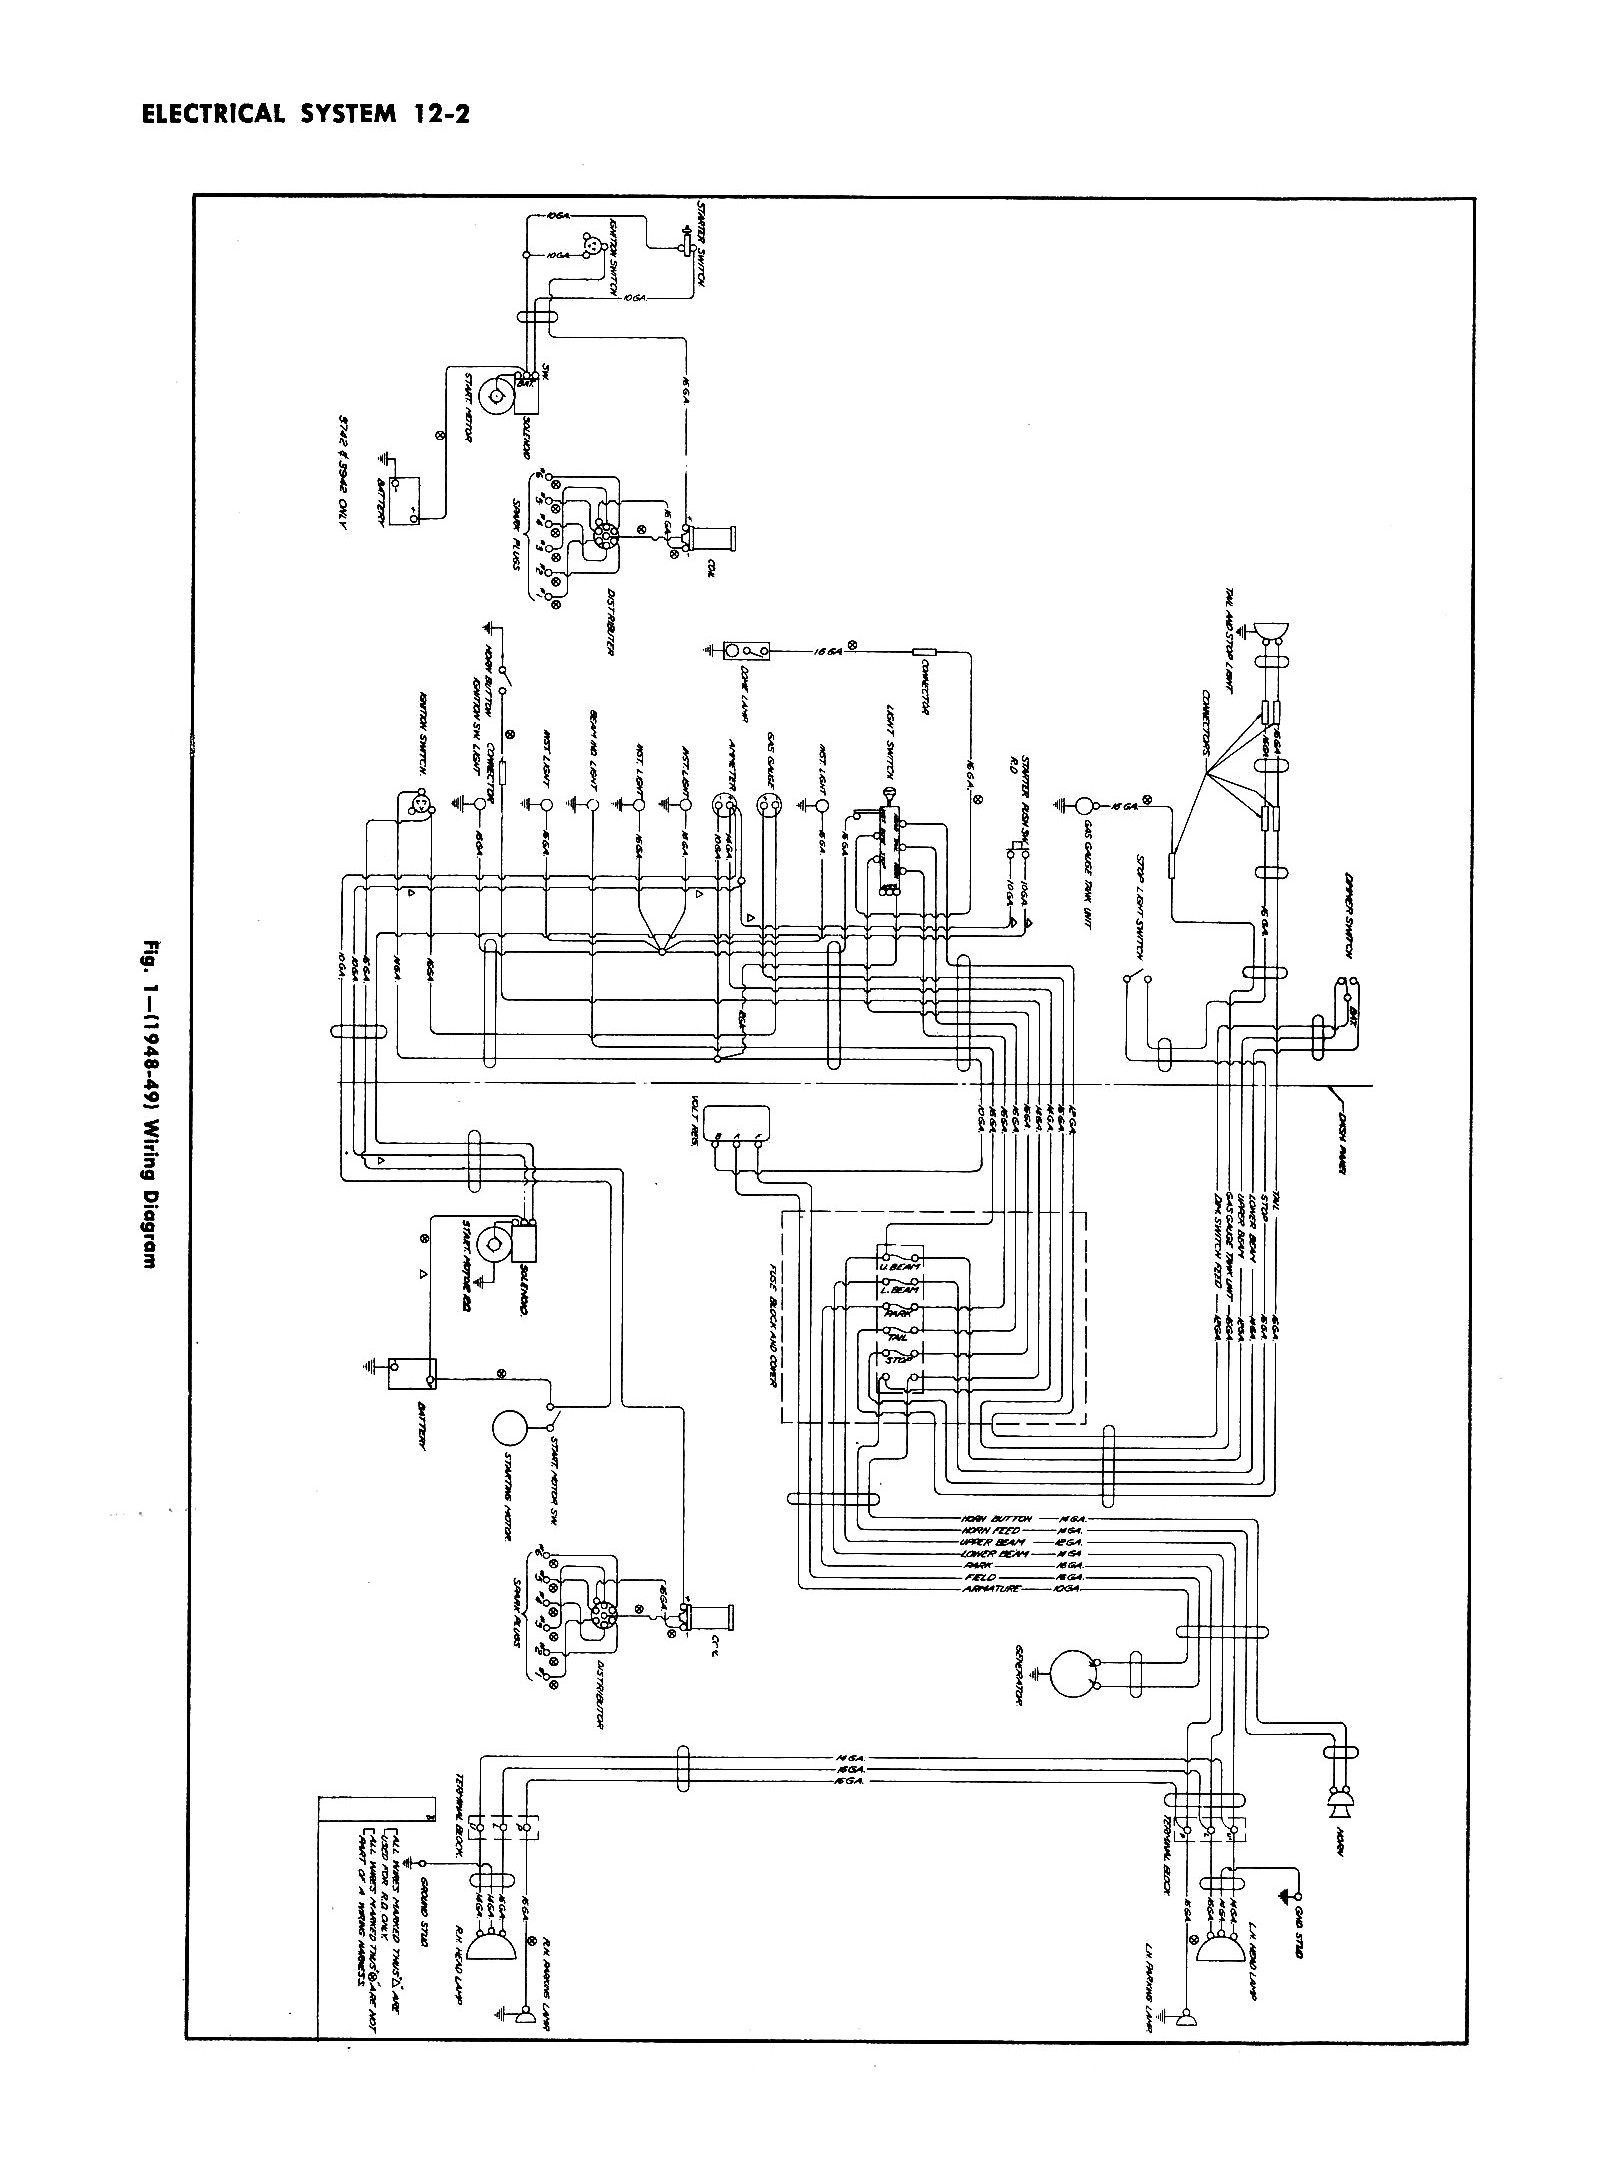 Kubota G4200h Wiring Diagram Diagrams Pdf 1976 Chevy Truck Schematics Shut Off Solenoid